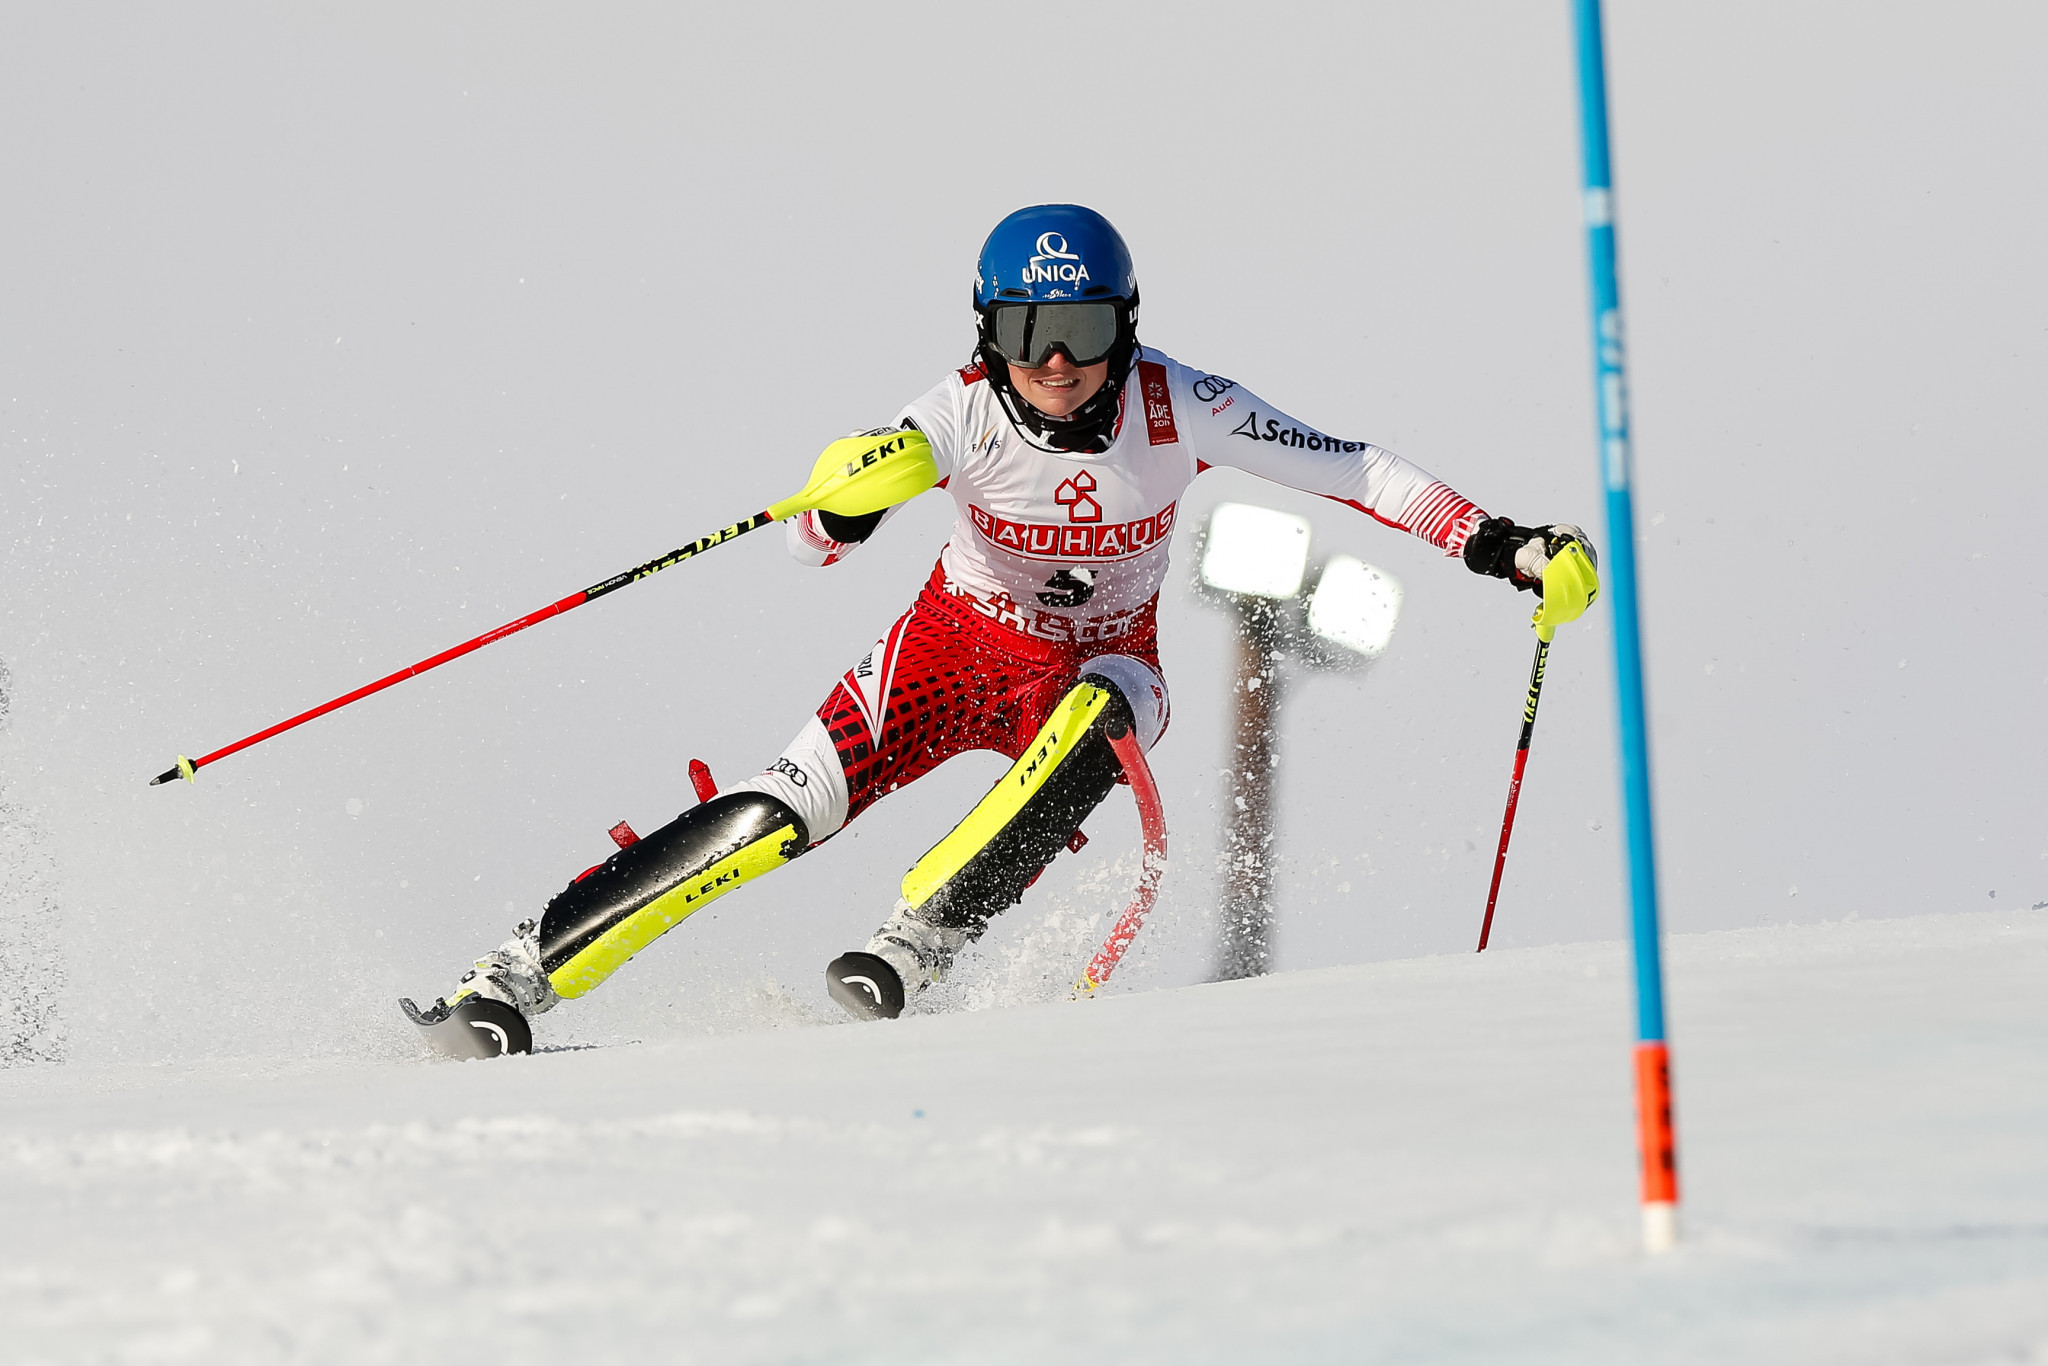 The slalom competition was the final women's event of the Championships ©Getty Images